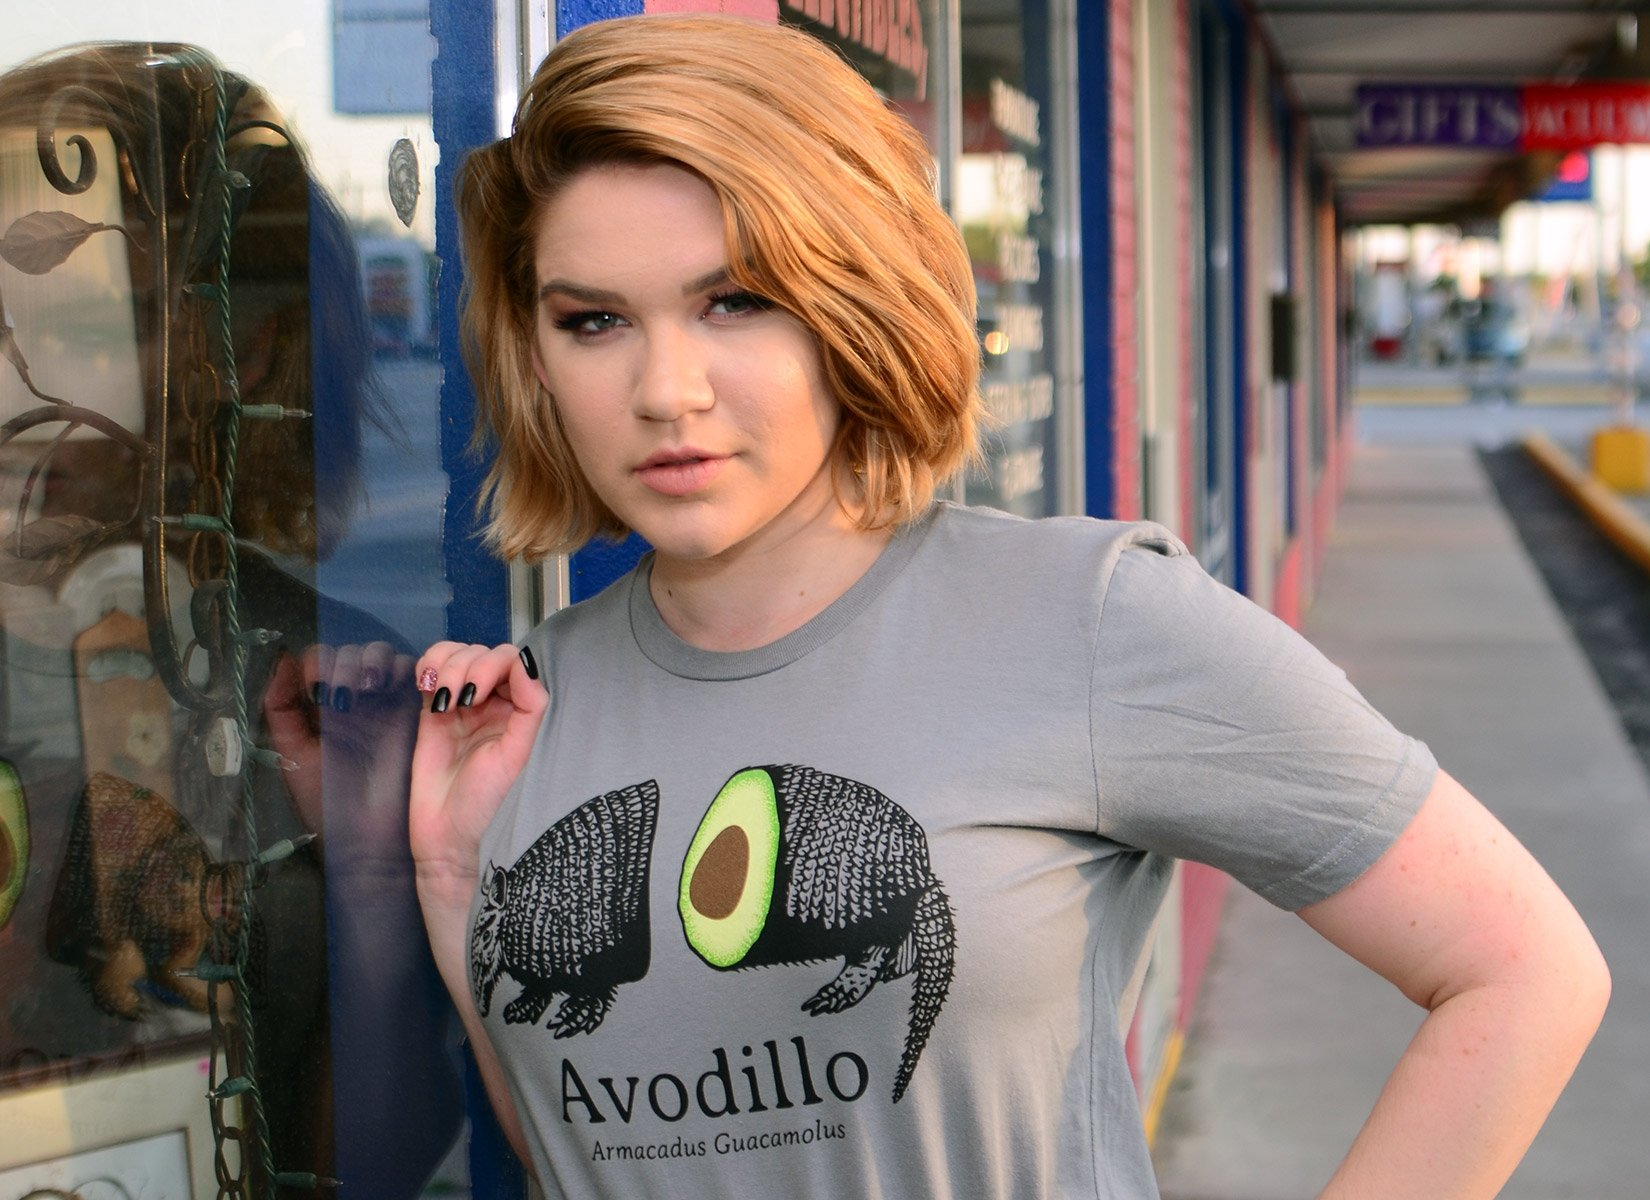 Avodillo on Womens T-Shirt